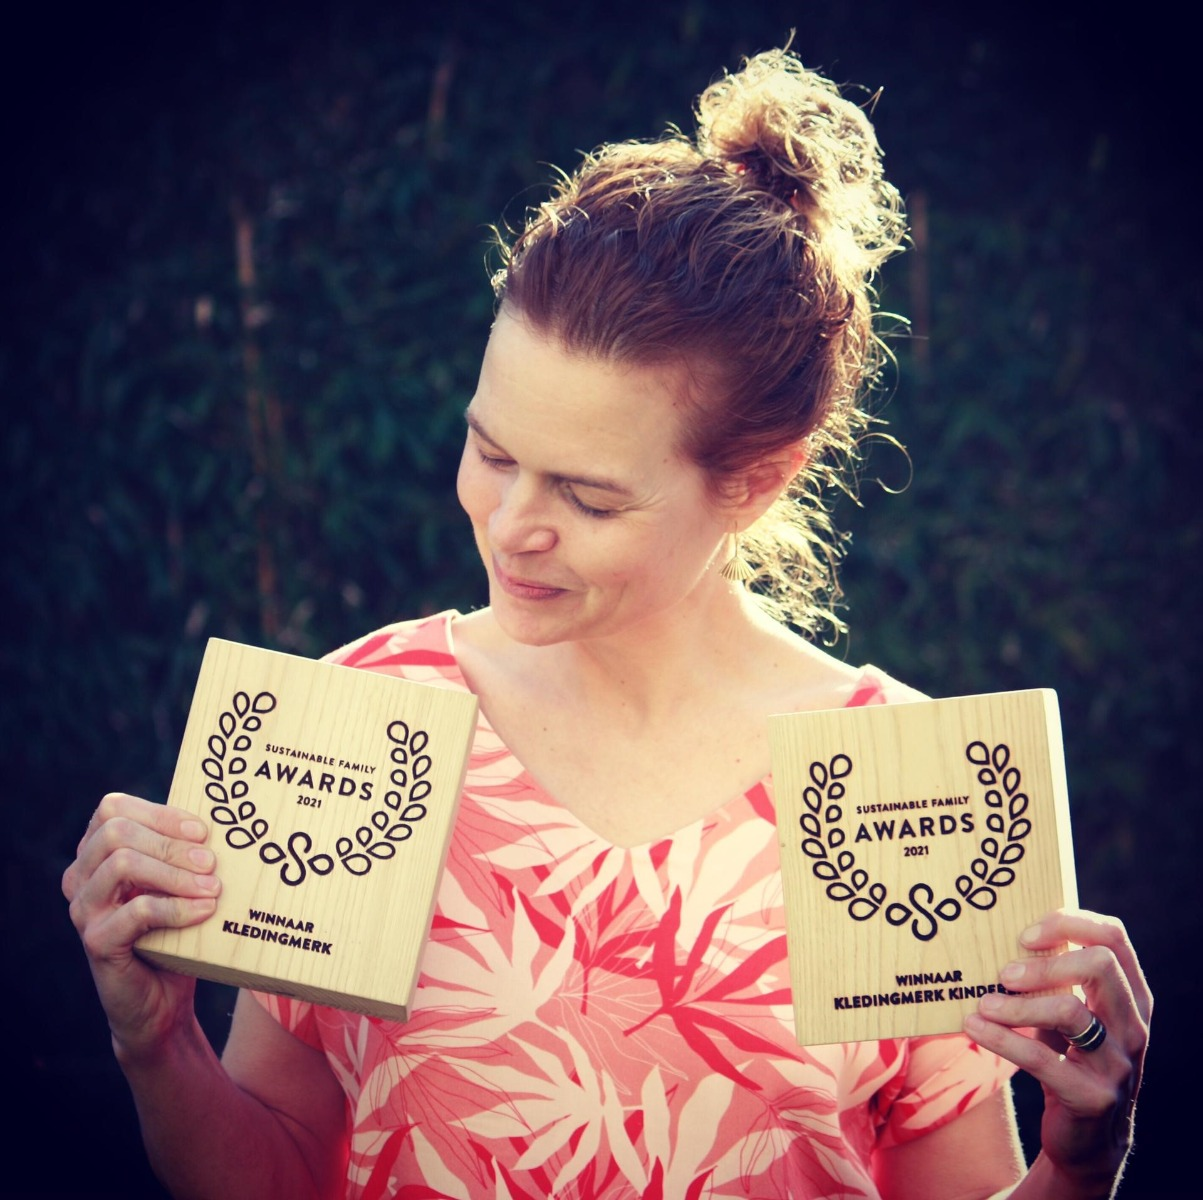 Anne met onze Sustainable Family Awards